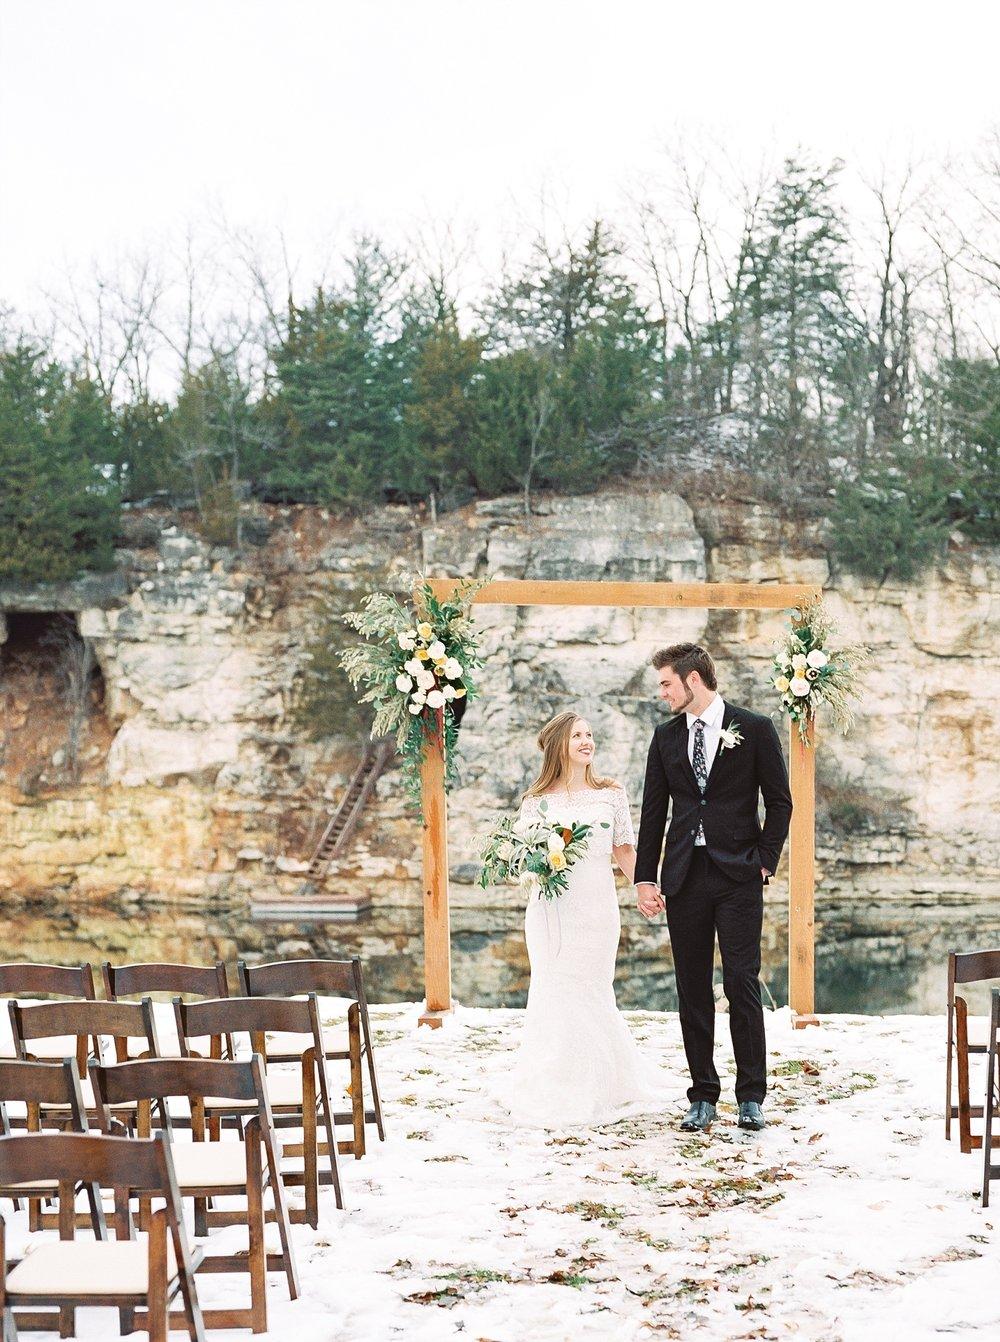 Snowy Winter Wedding at Wildcliff Events Lake With Earthy Jewel Tones and Organic Refined Style by Kelsi Kliethermes Photography Kansas City Missouri Wedding Photographer_0115.jpg